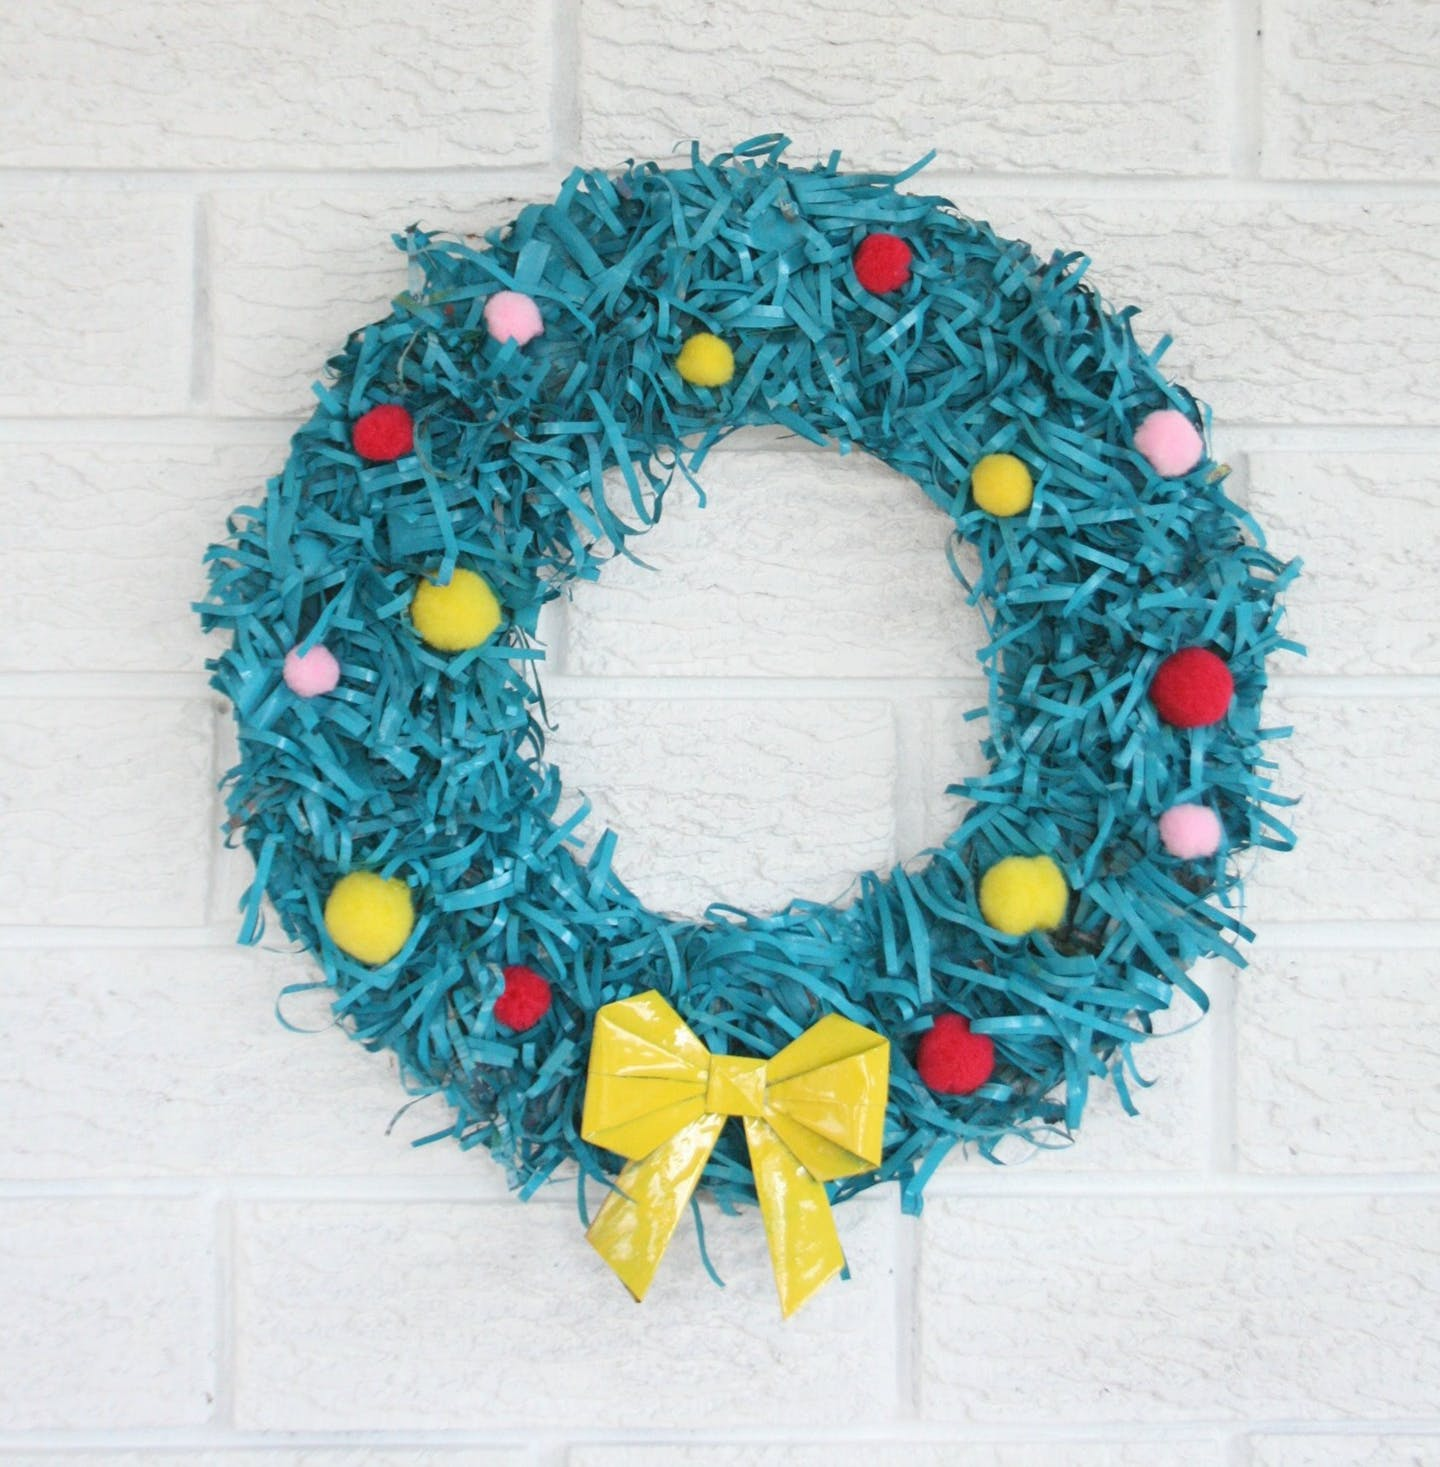 diy upcycled modern christmas wreath.  christmas wreath ideas that are swoonworthy  crafts on fire